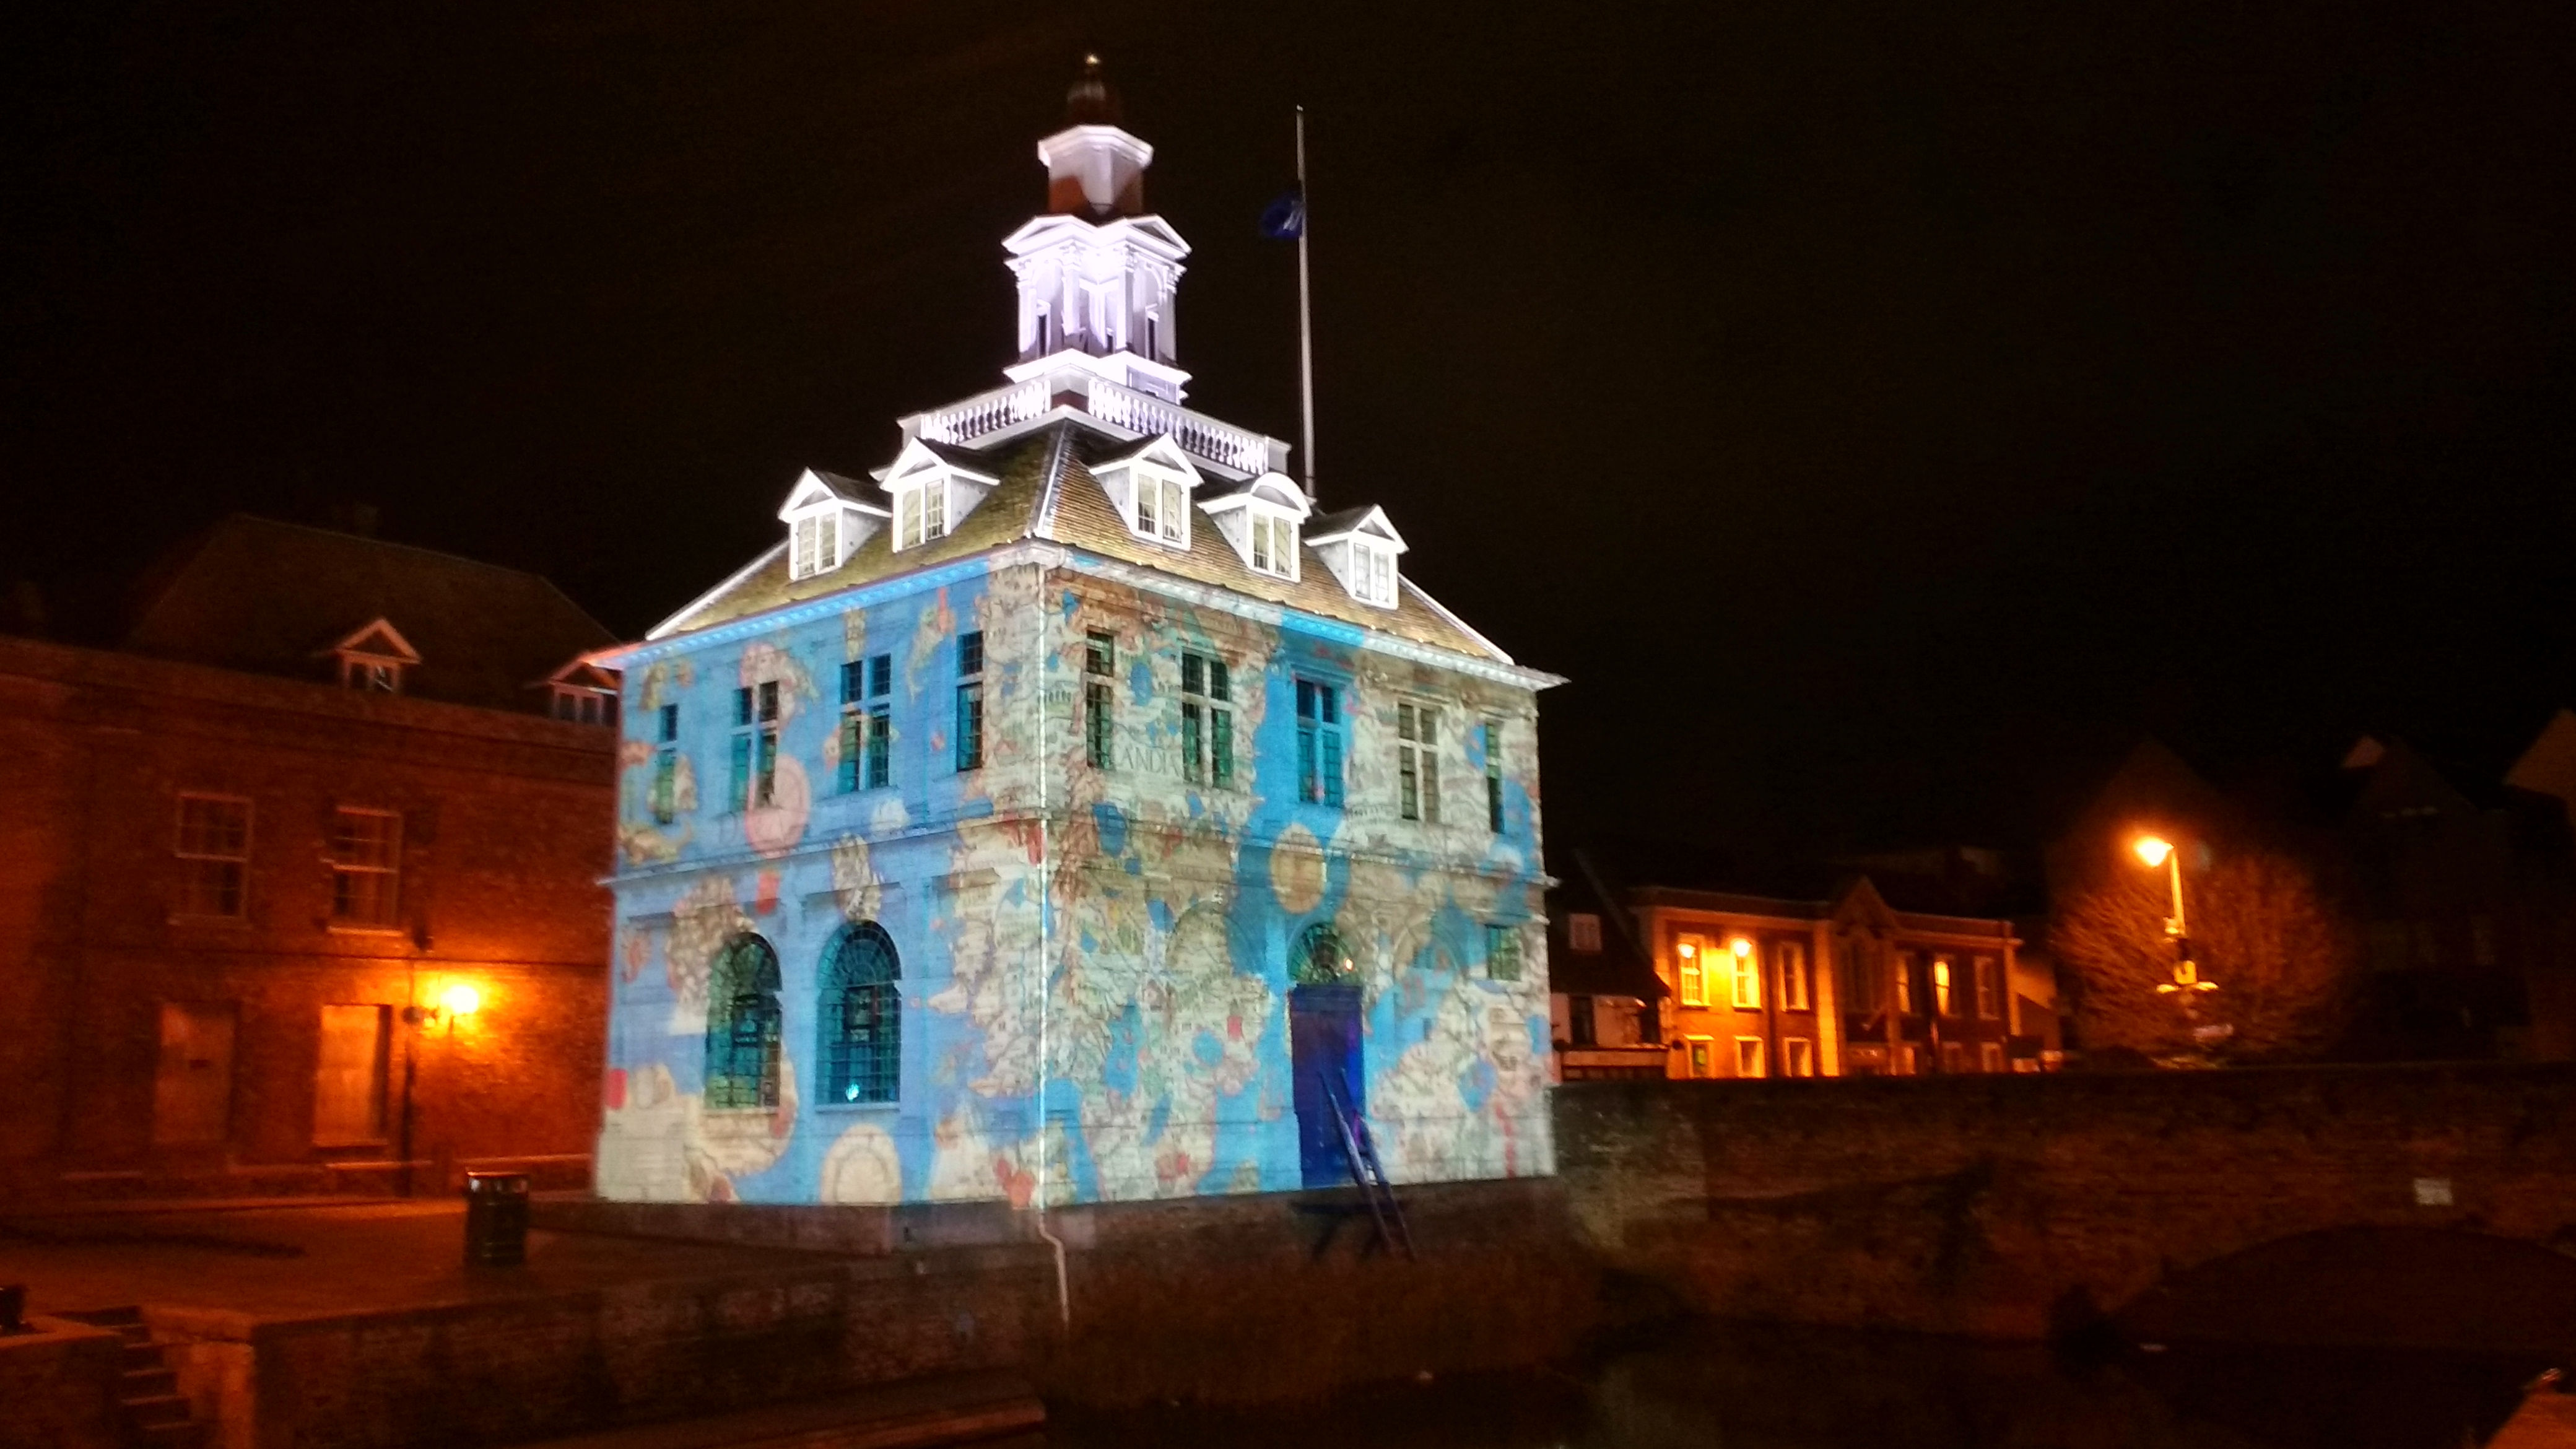 Lynn Lumiere Light Show At Kings Lynn Custom House The Crumbly Gappers